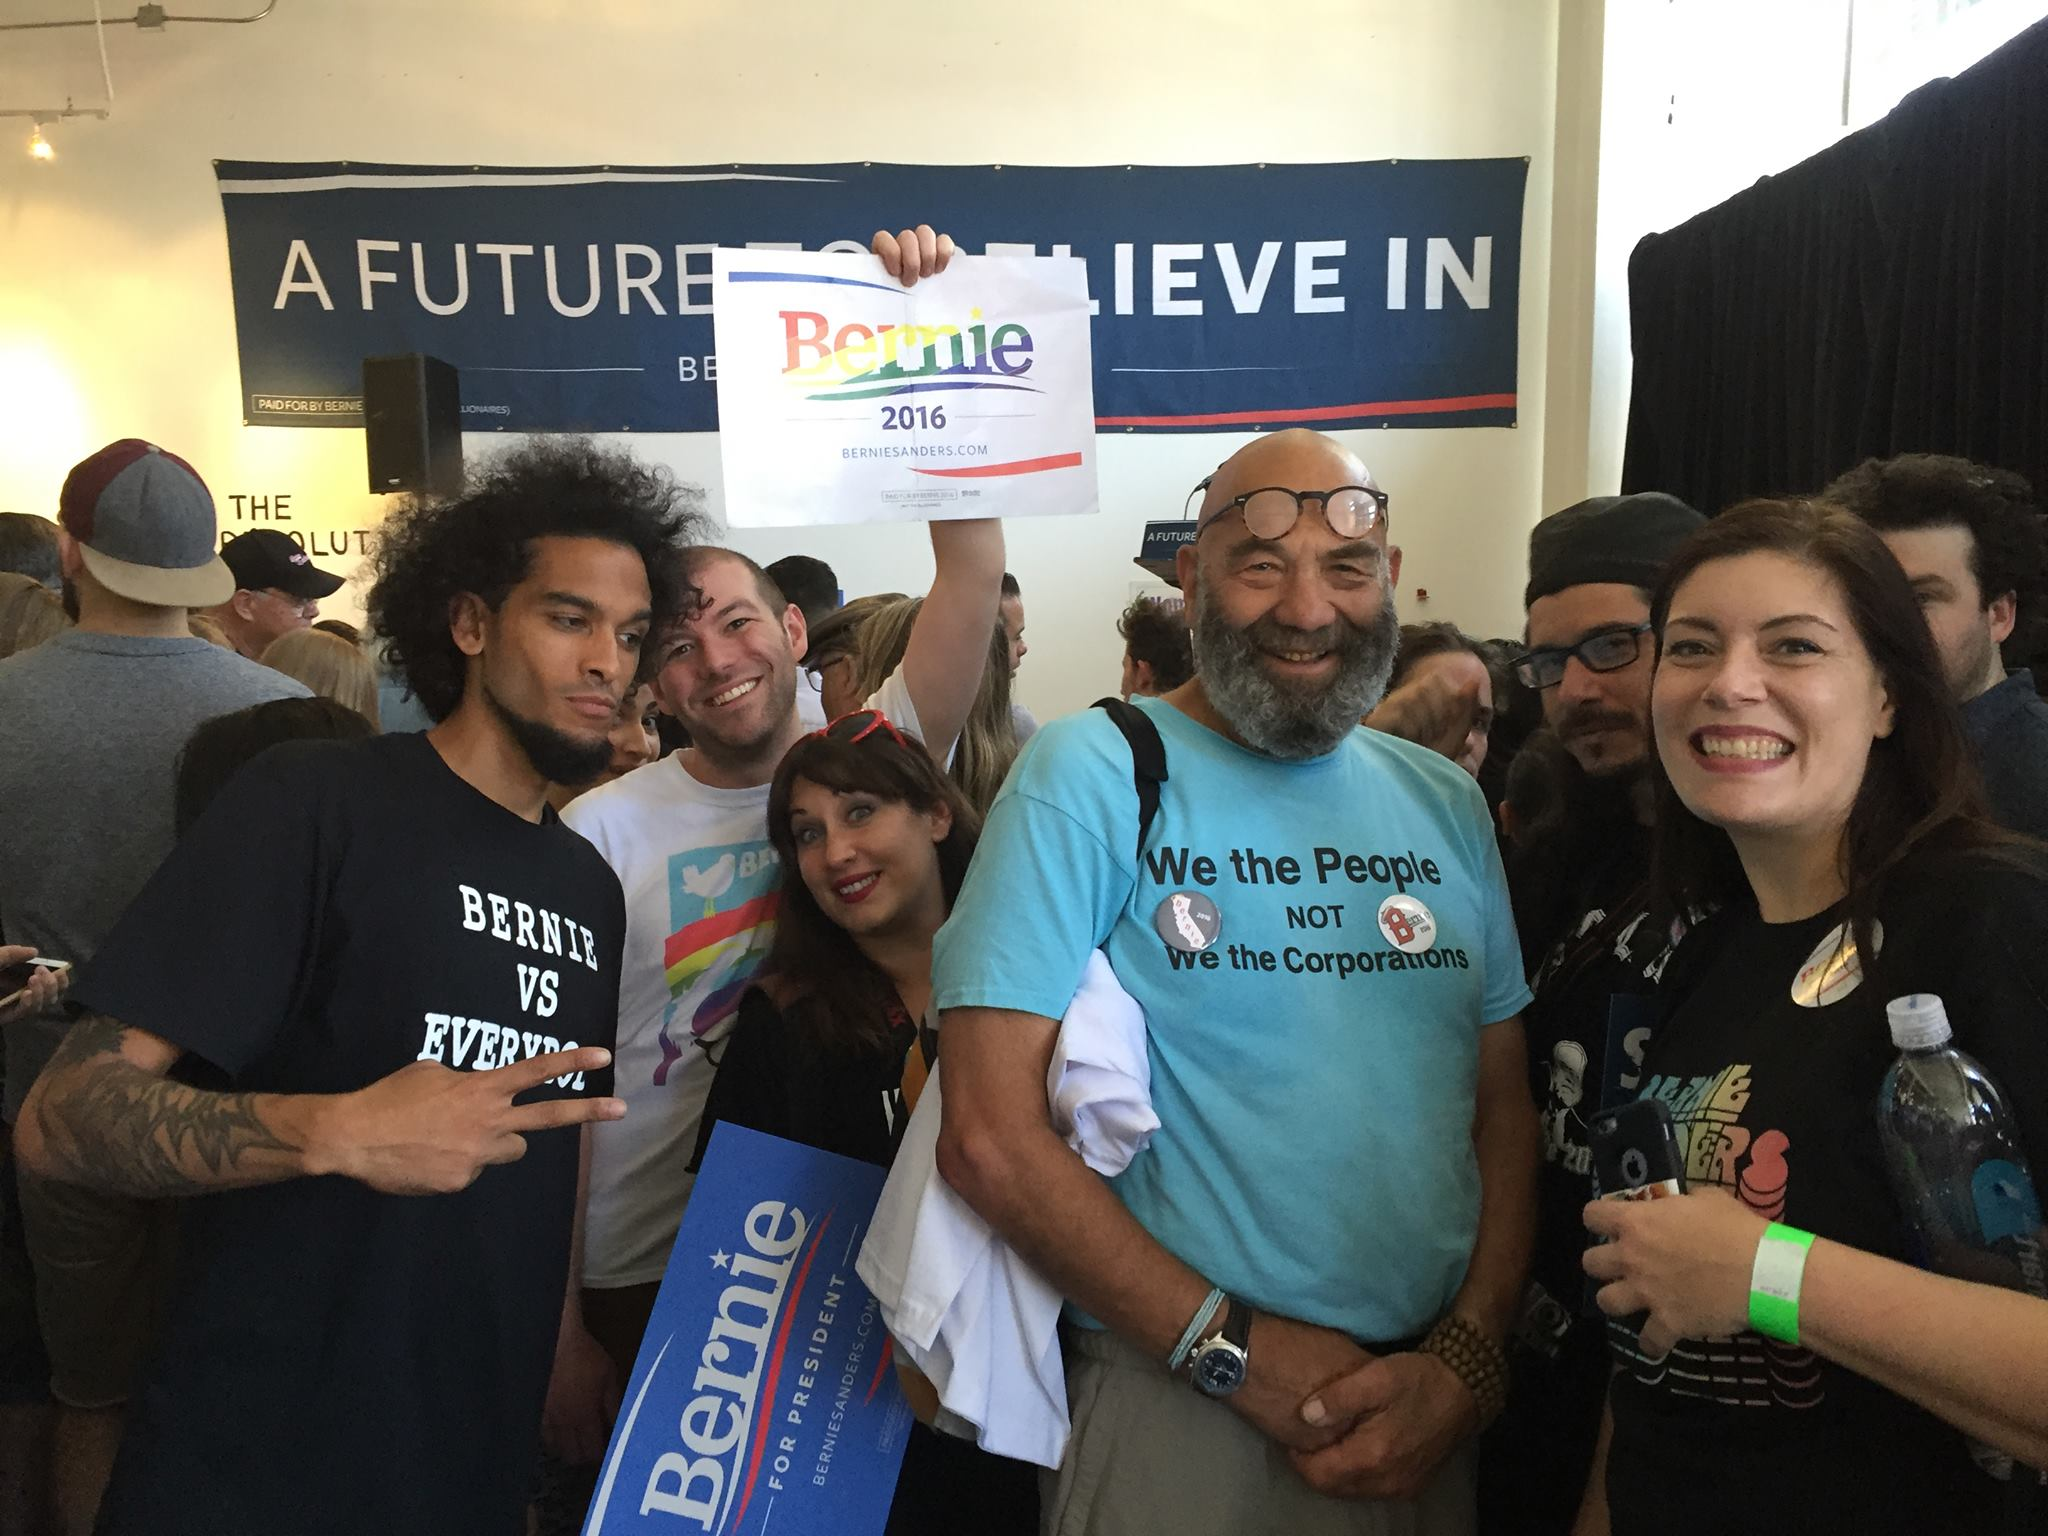 Embedded with the Sanders Campaign in LA